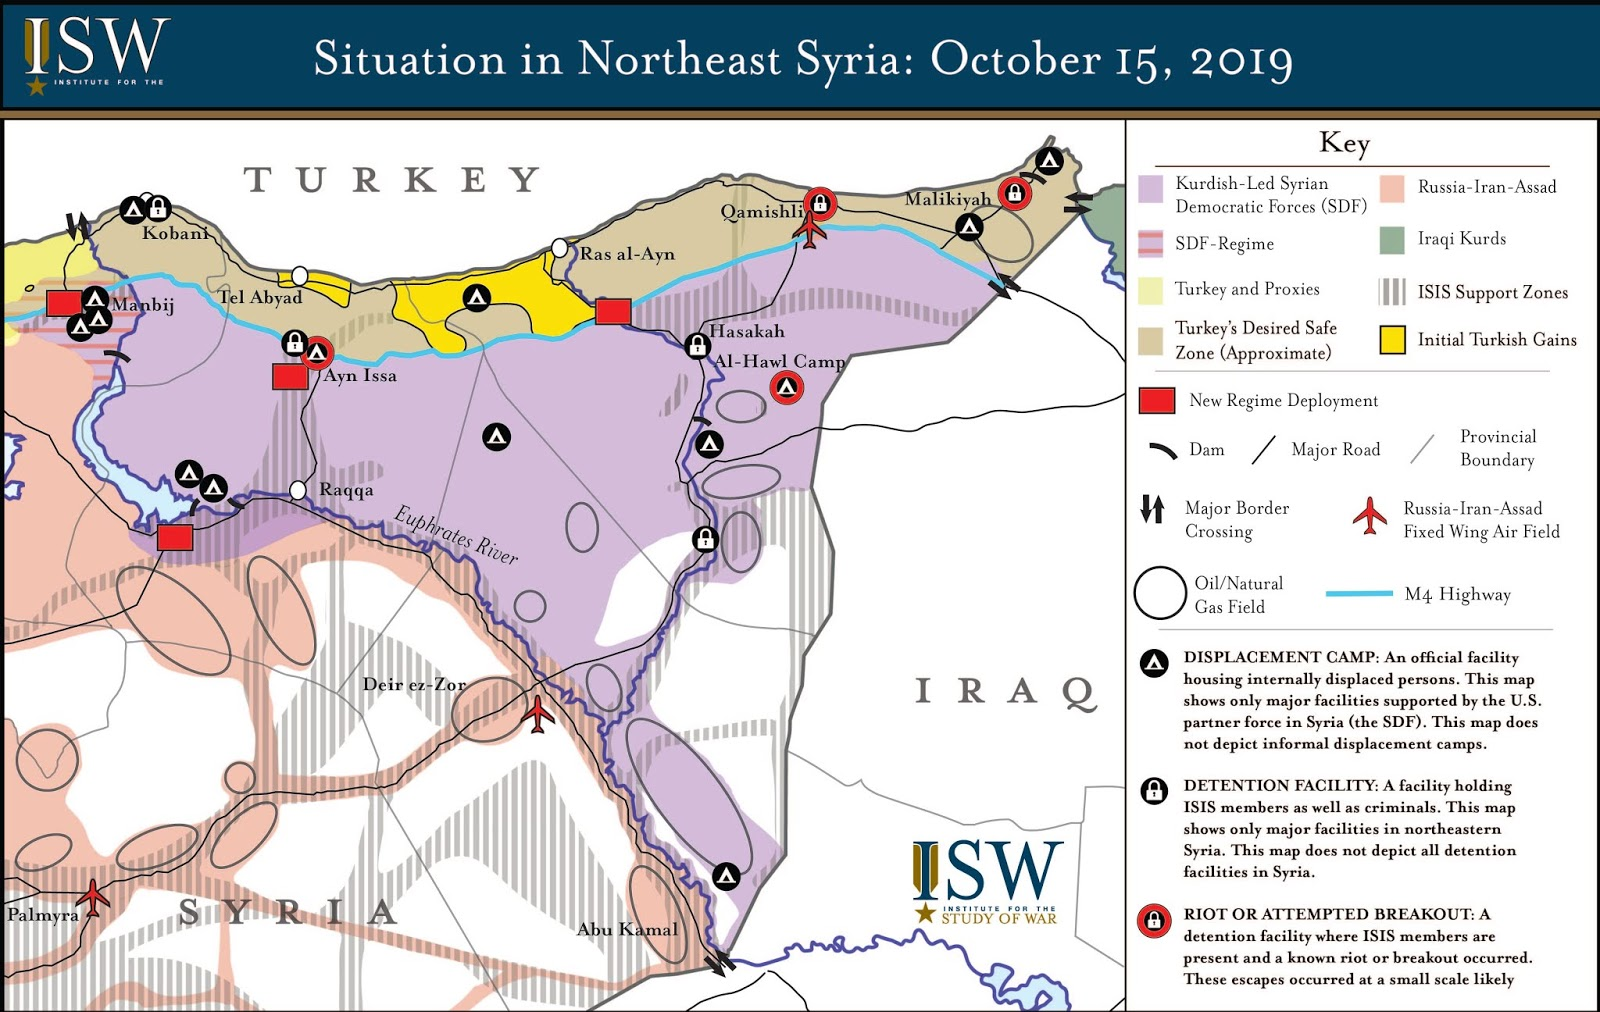 ISW Blog: Situation in Northeast Syria: October 15, 2019 Map on